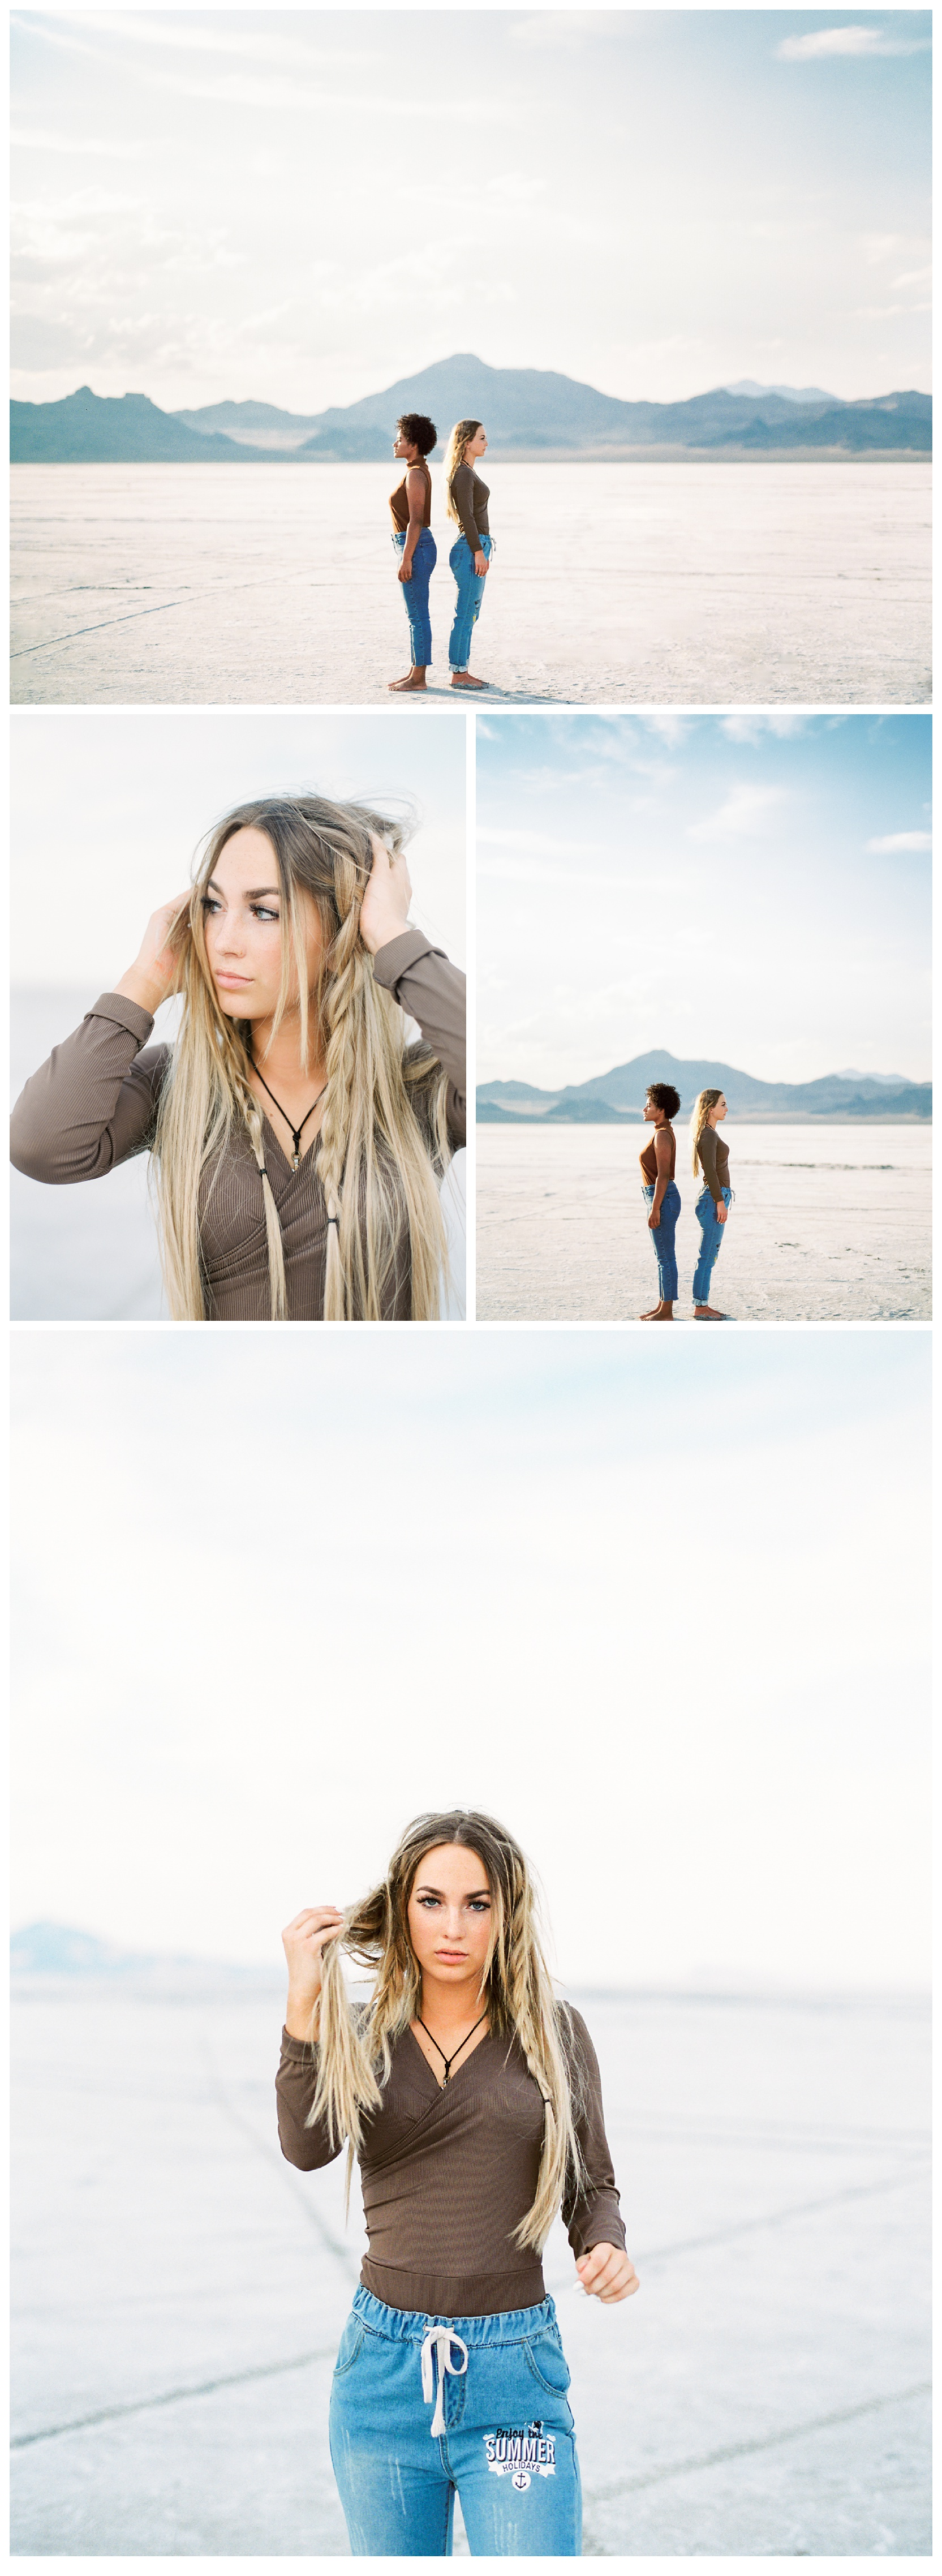 utah-bonneville-salt-flats-fashion-film-photos-22.jpg